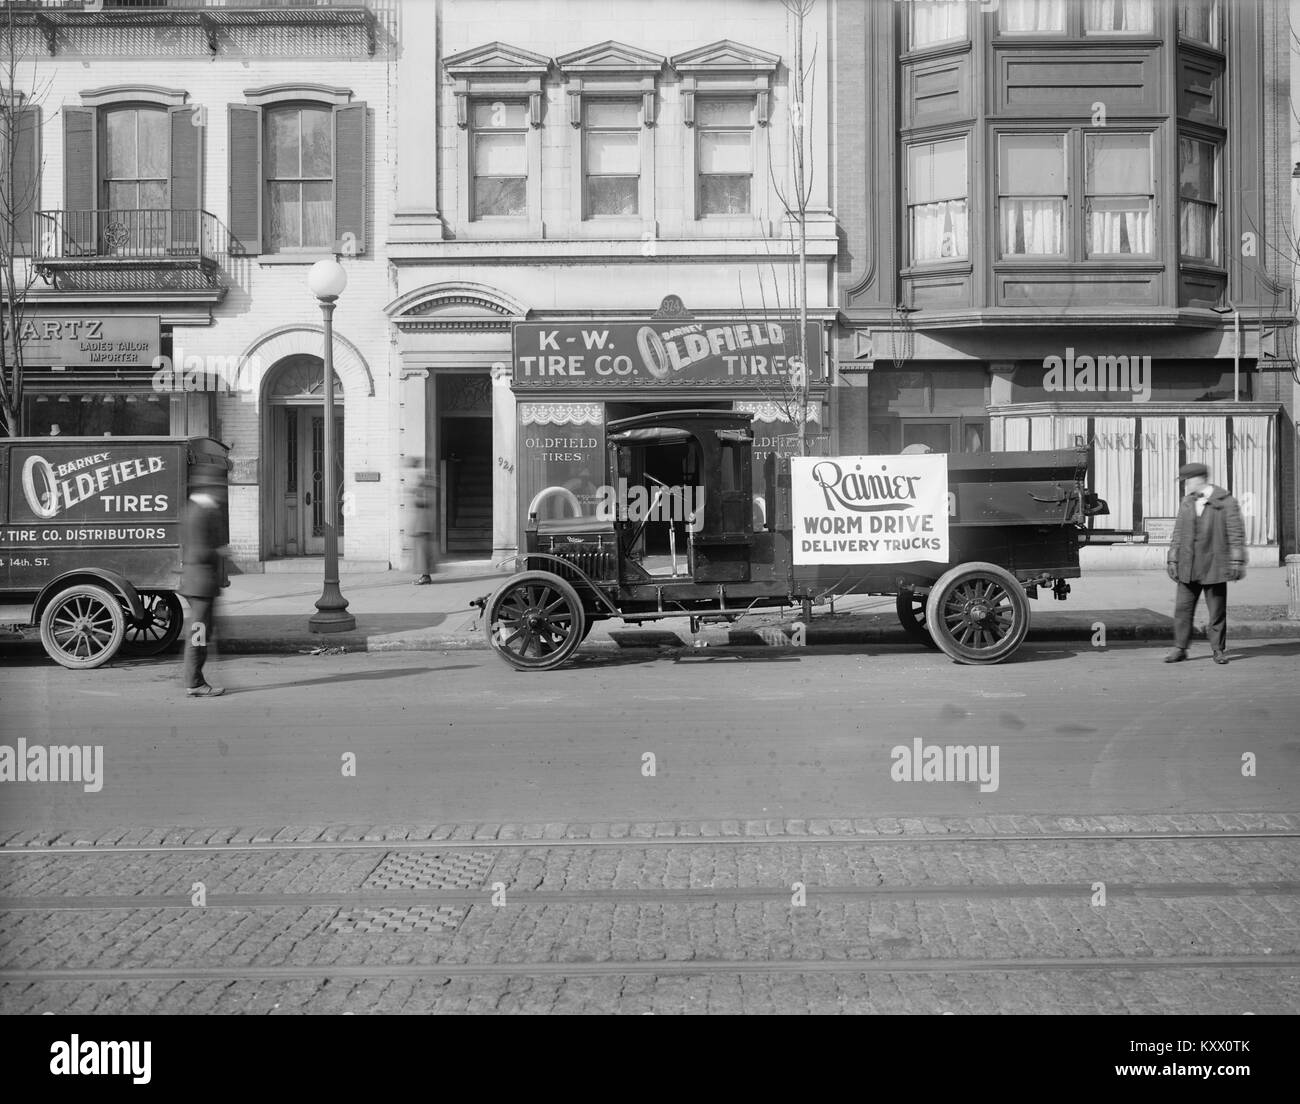 Ranier, Worm Drive Delivery Trucks, Barney Oldfield Tires - Stock Image